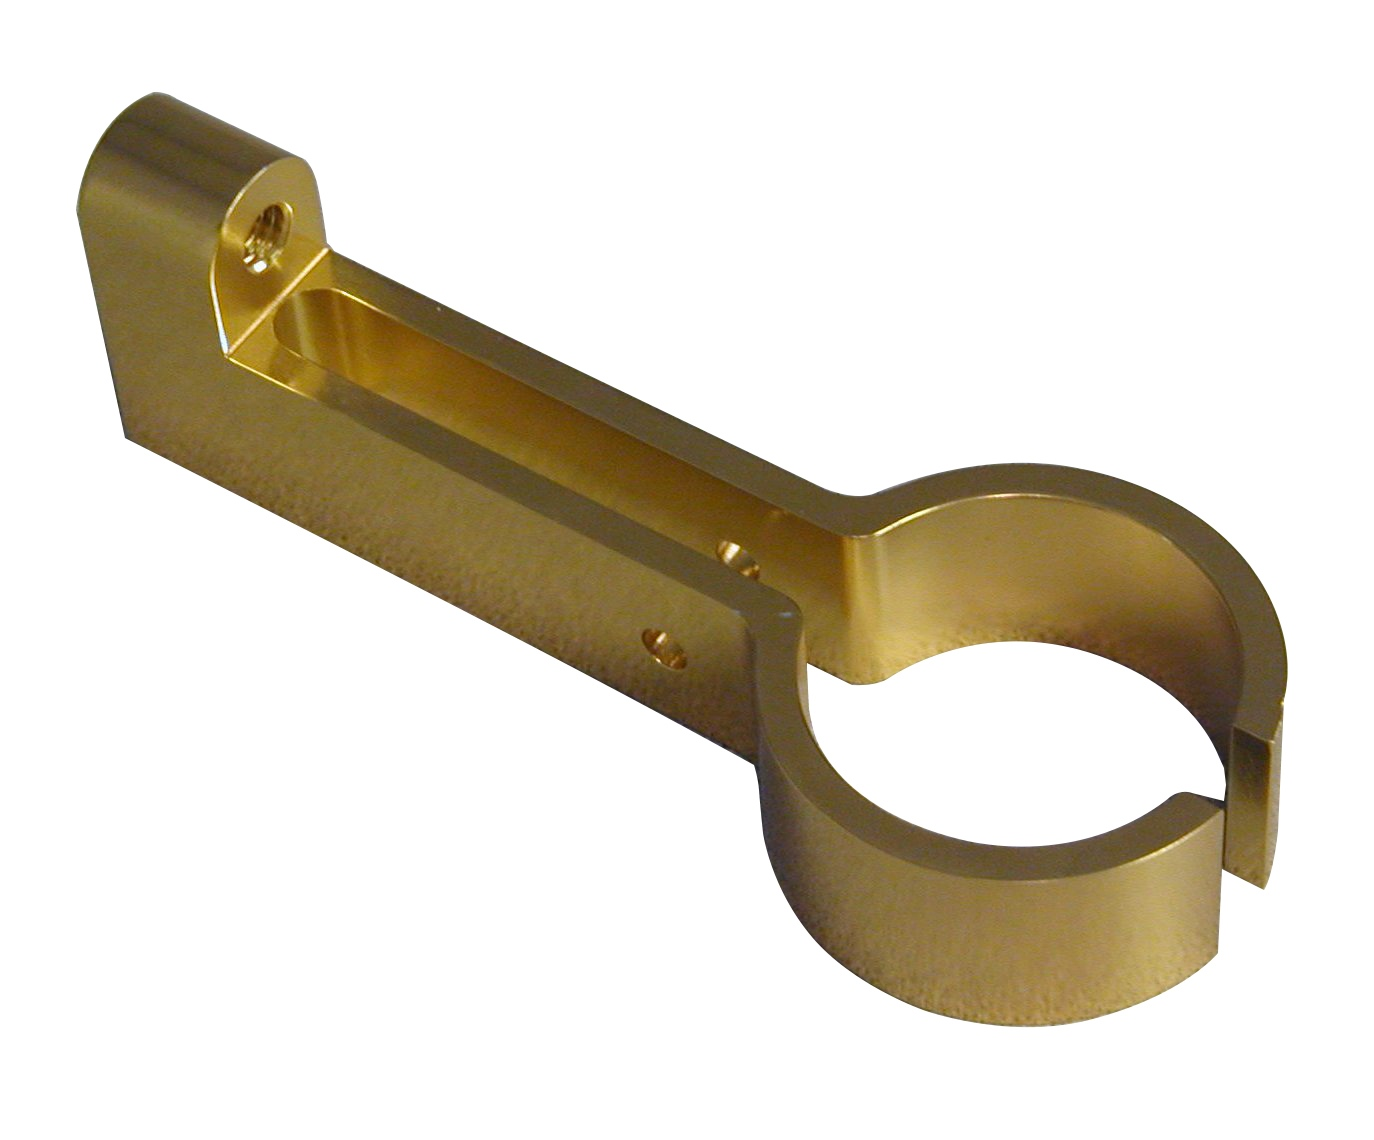 Milled brass clamp